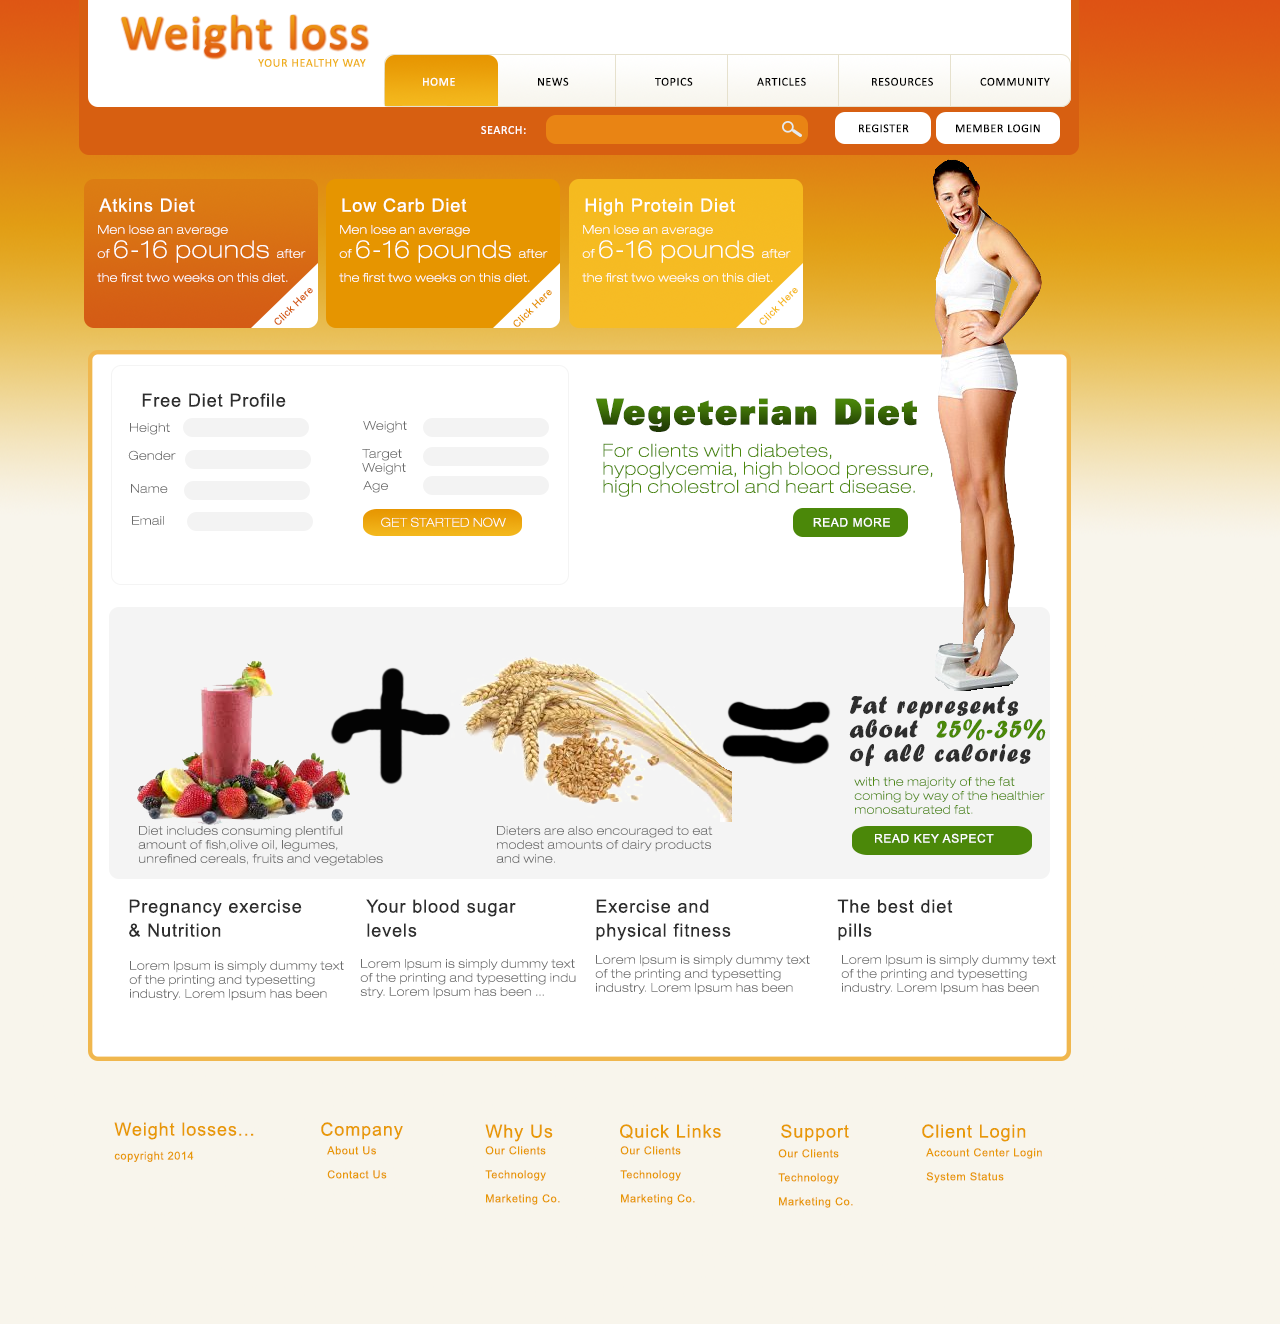 http://www.honeyvig.com/weight-loss-honeyvig.psd